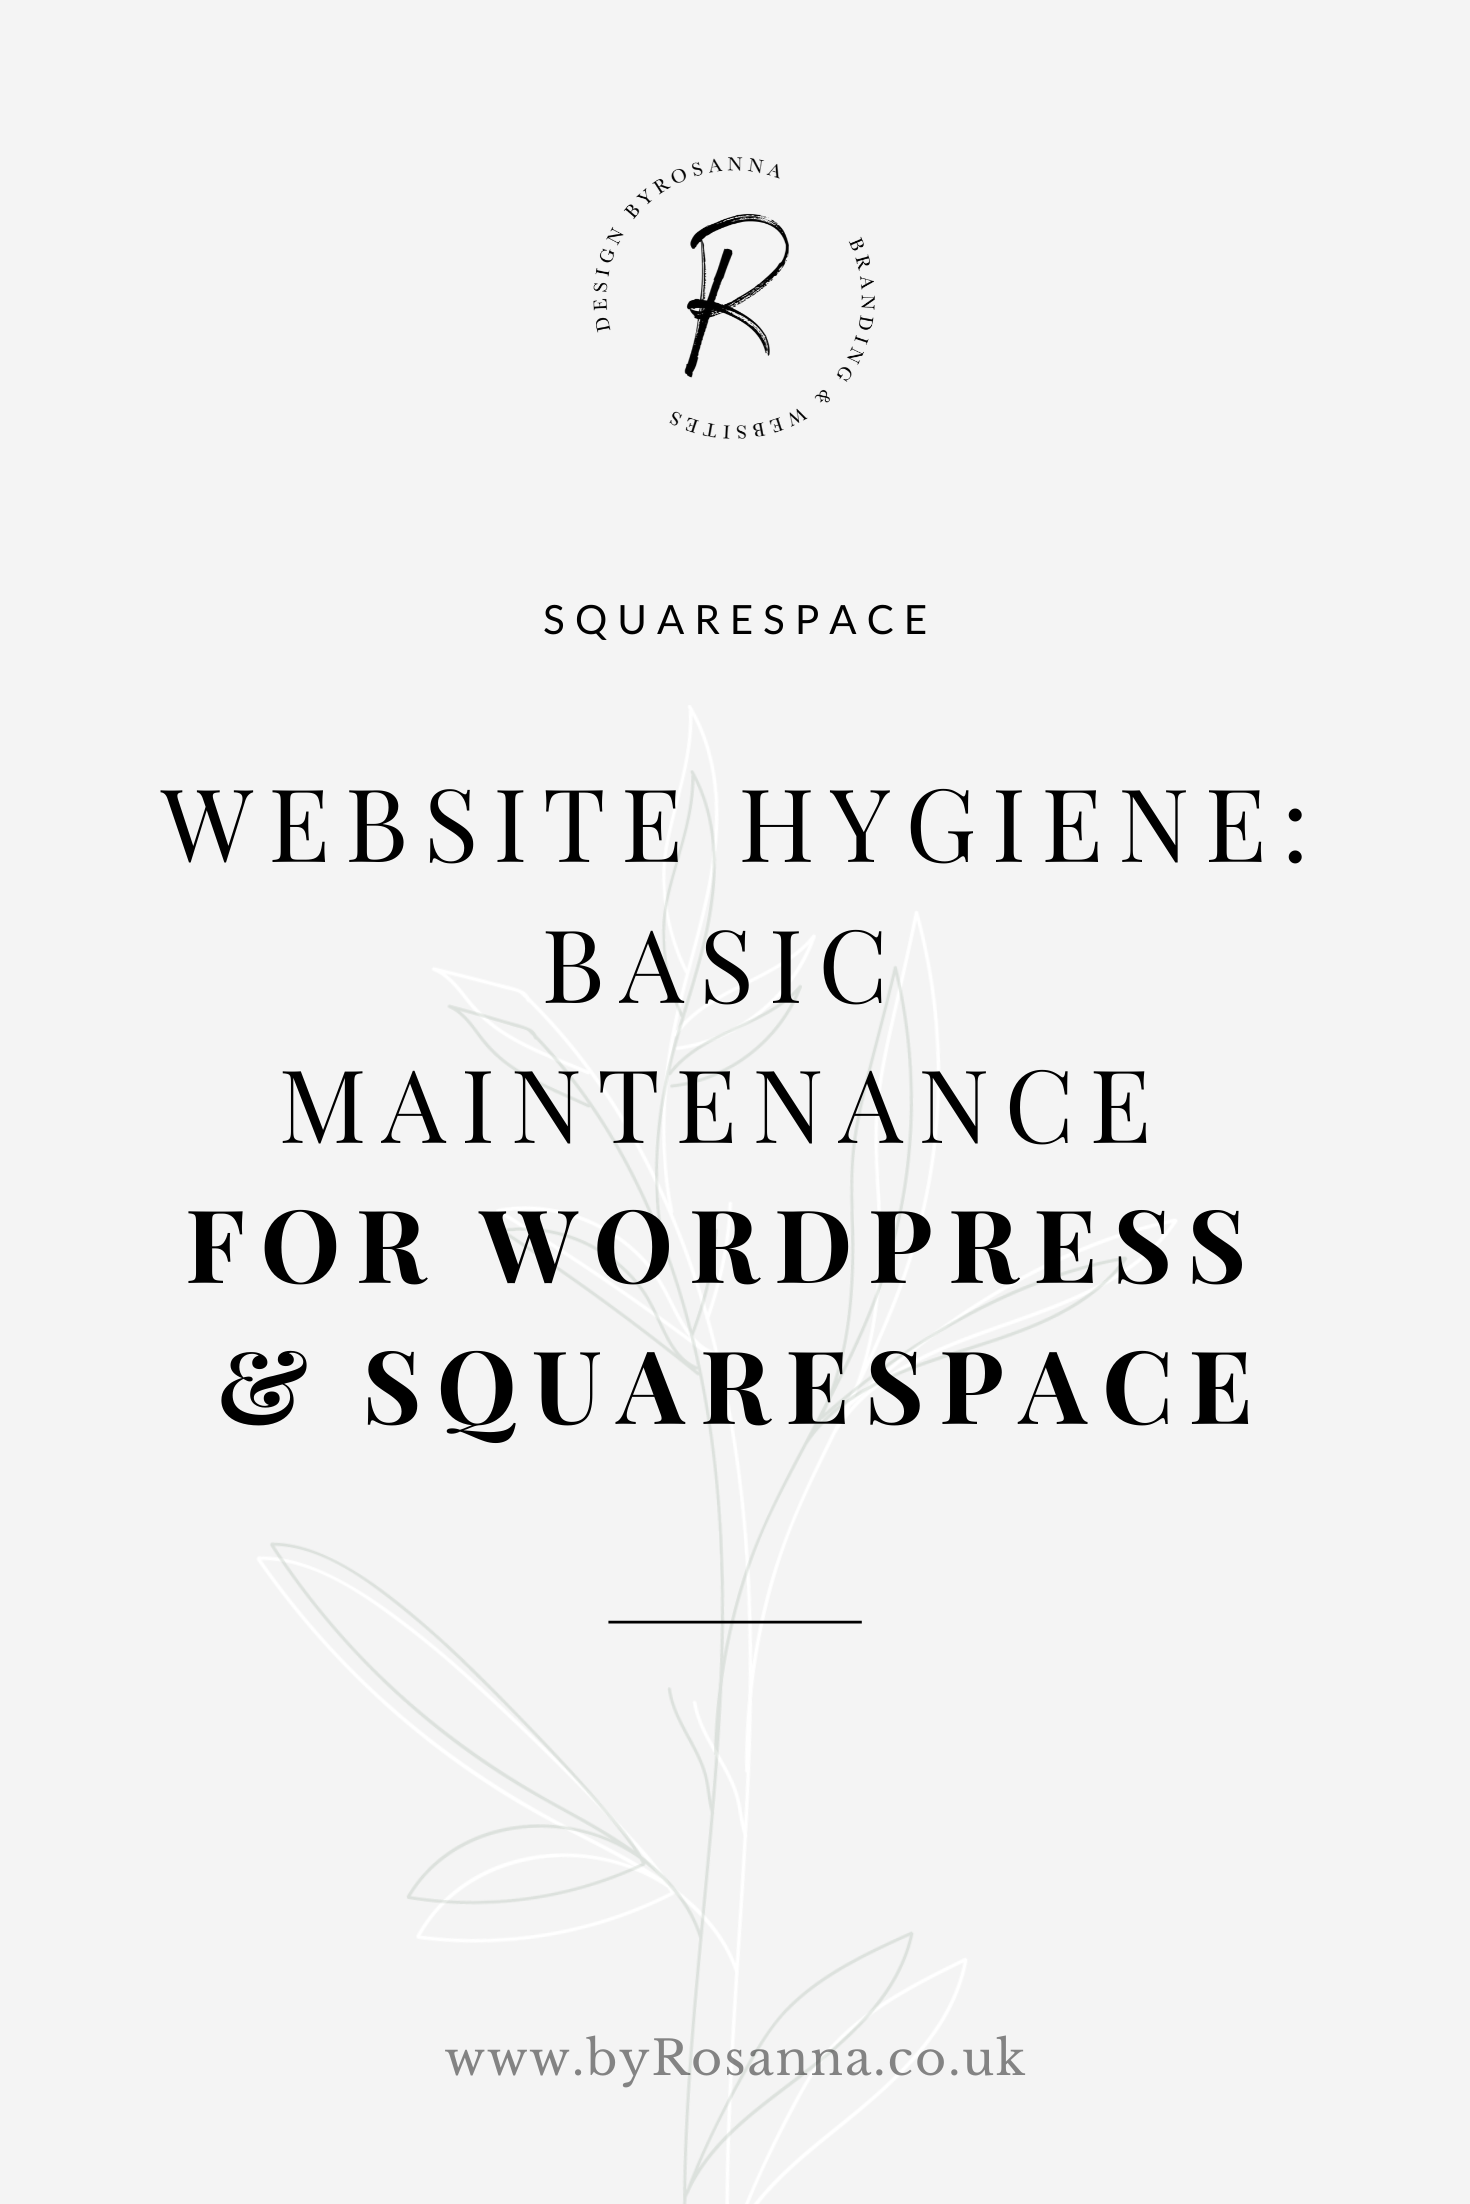 Website Hygiene: Basic Maintenance for WordPress & Squarespace sites | byRosanna | #websitehygiene #websitedesign #websitemaintenance #wordpress #squarespace #squarespacetips